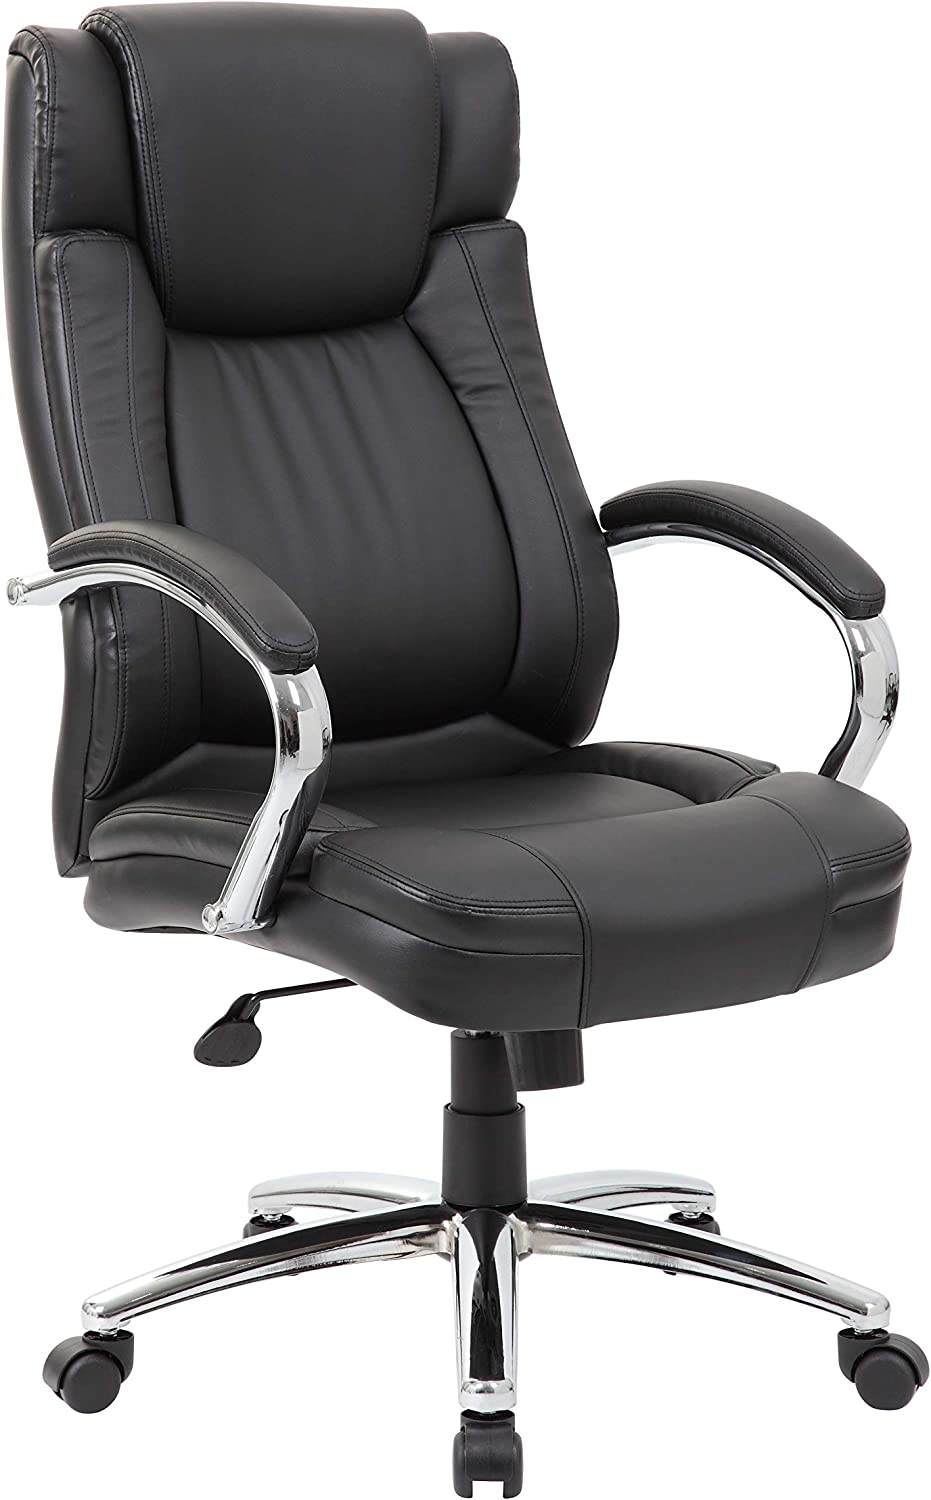 Boss Office Products (BOSXK) B17001C-BK Executive Chair Black